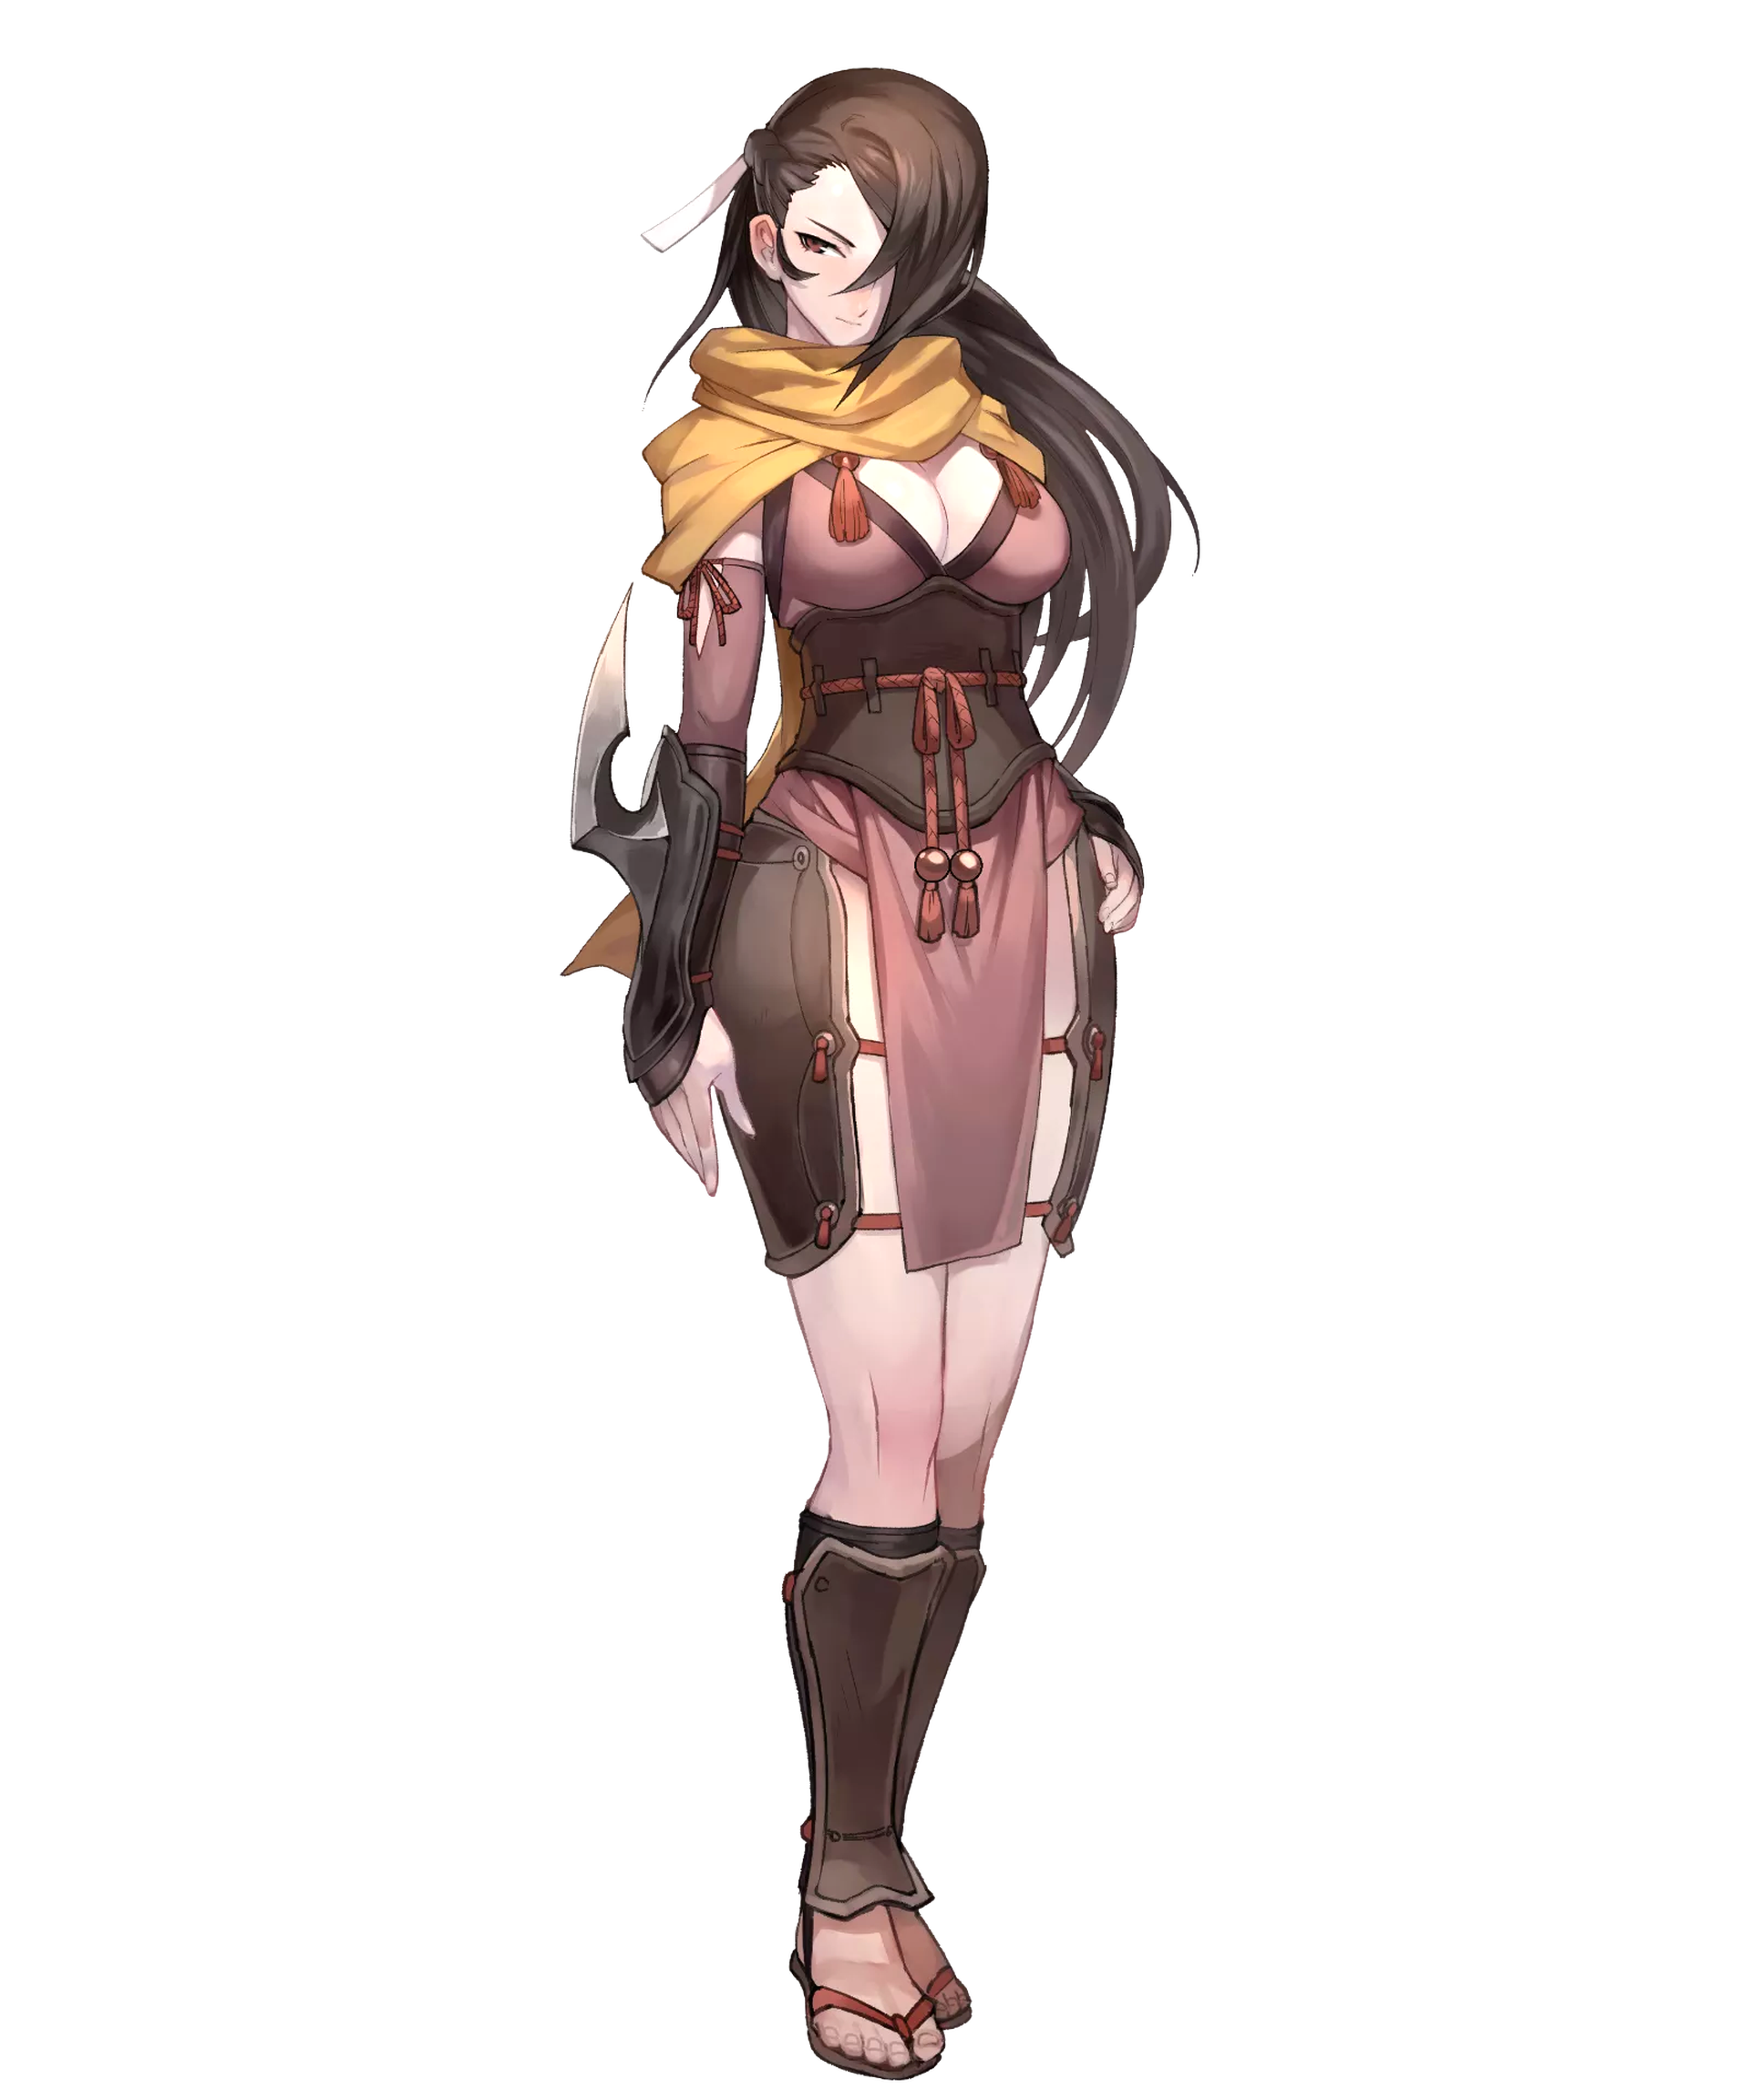 kagero for sale